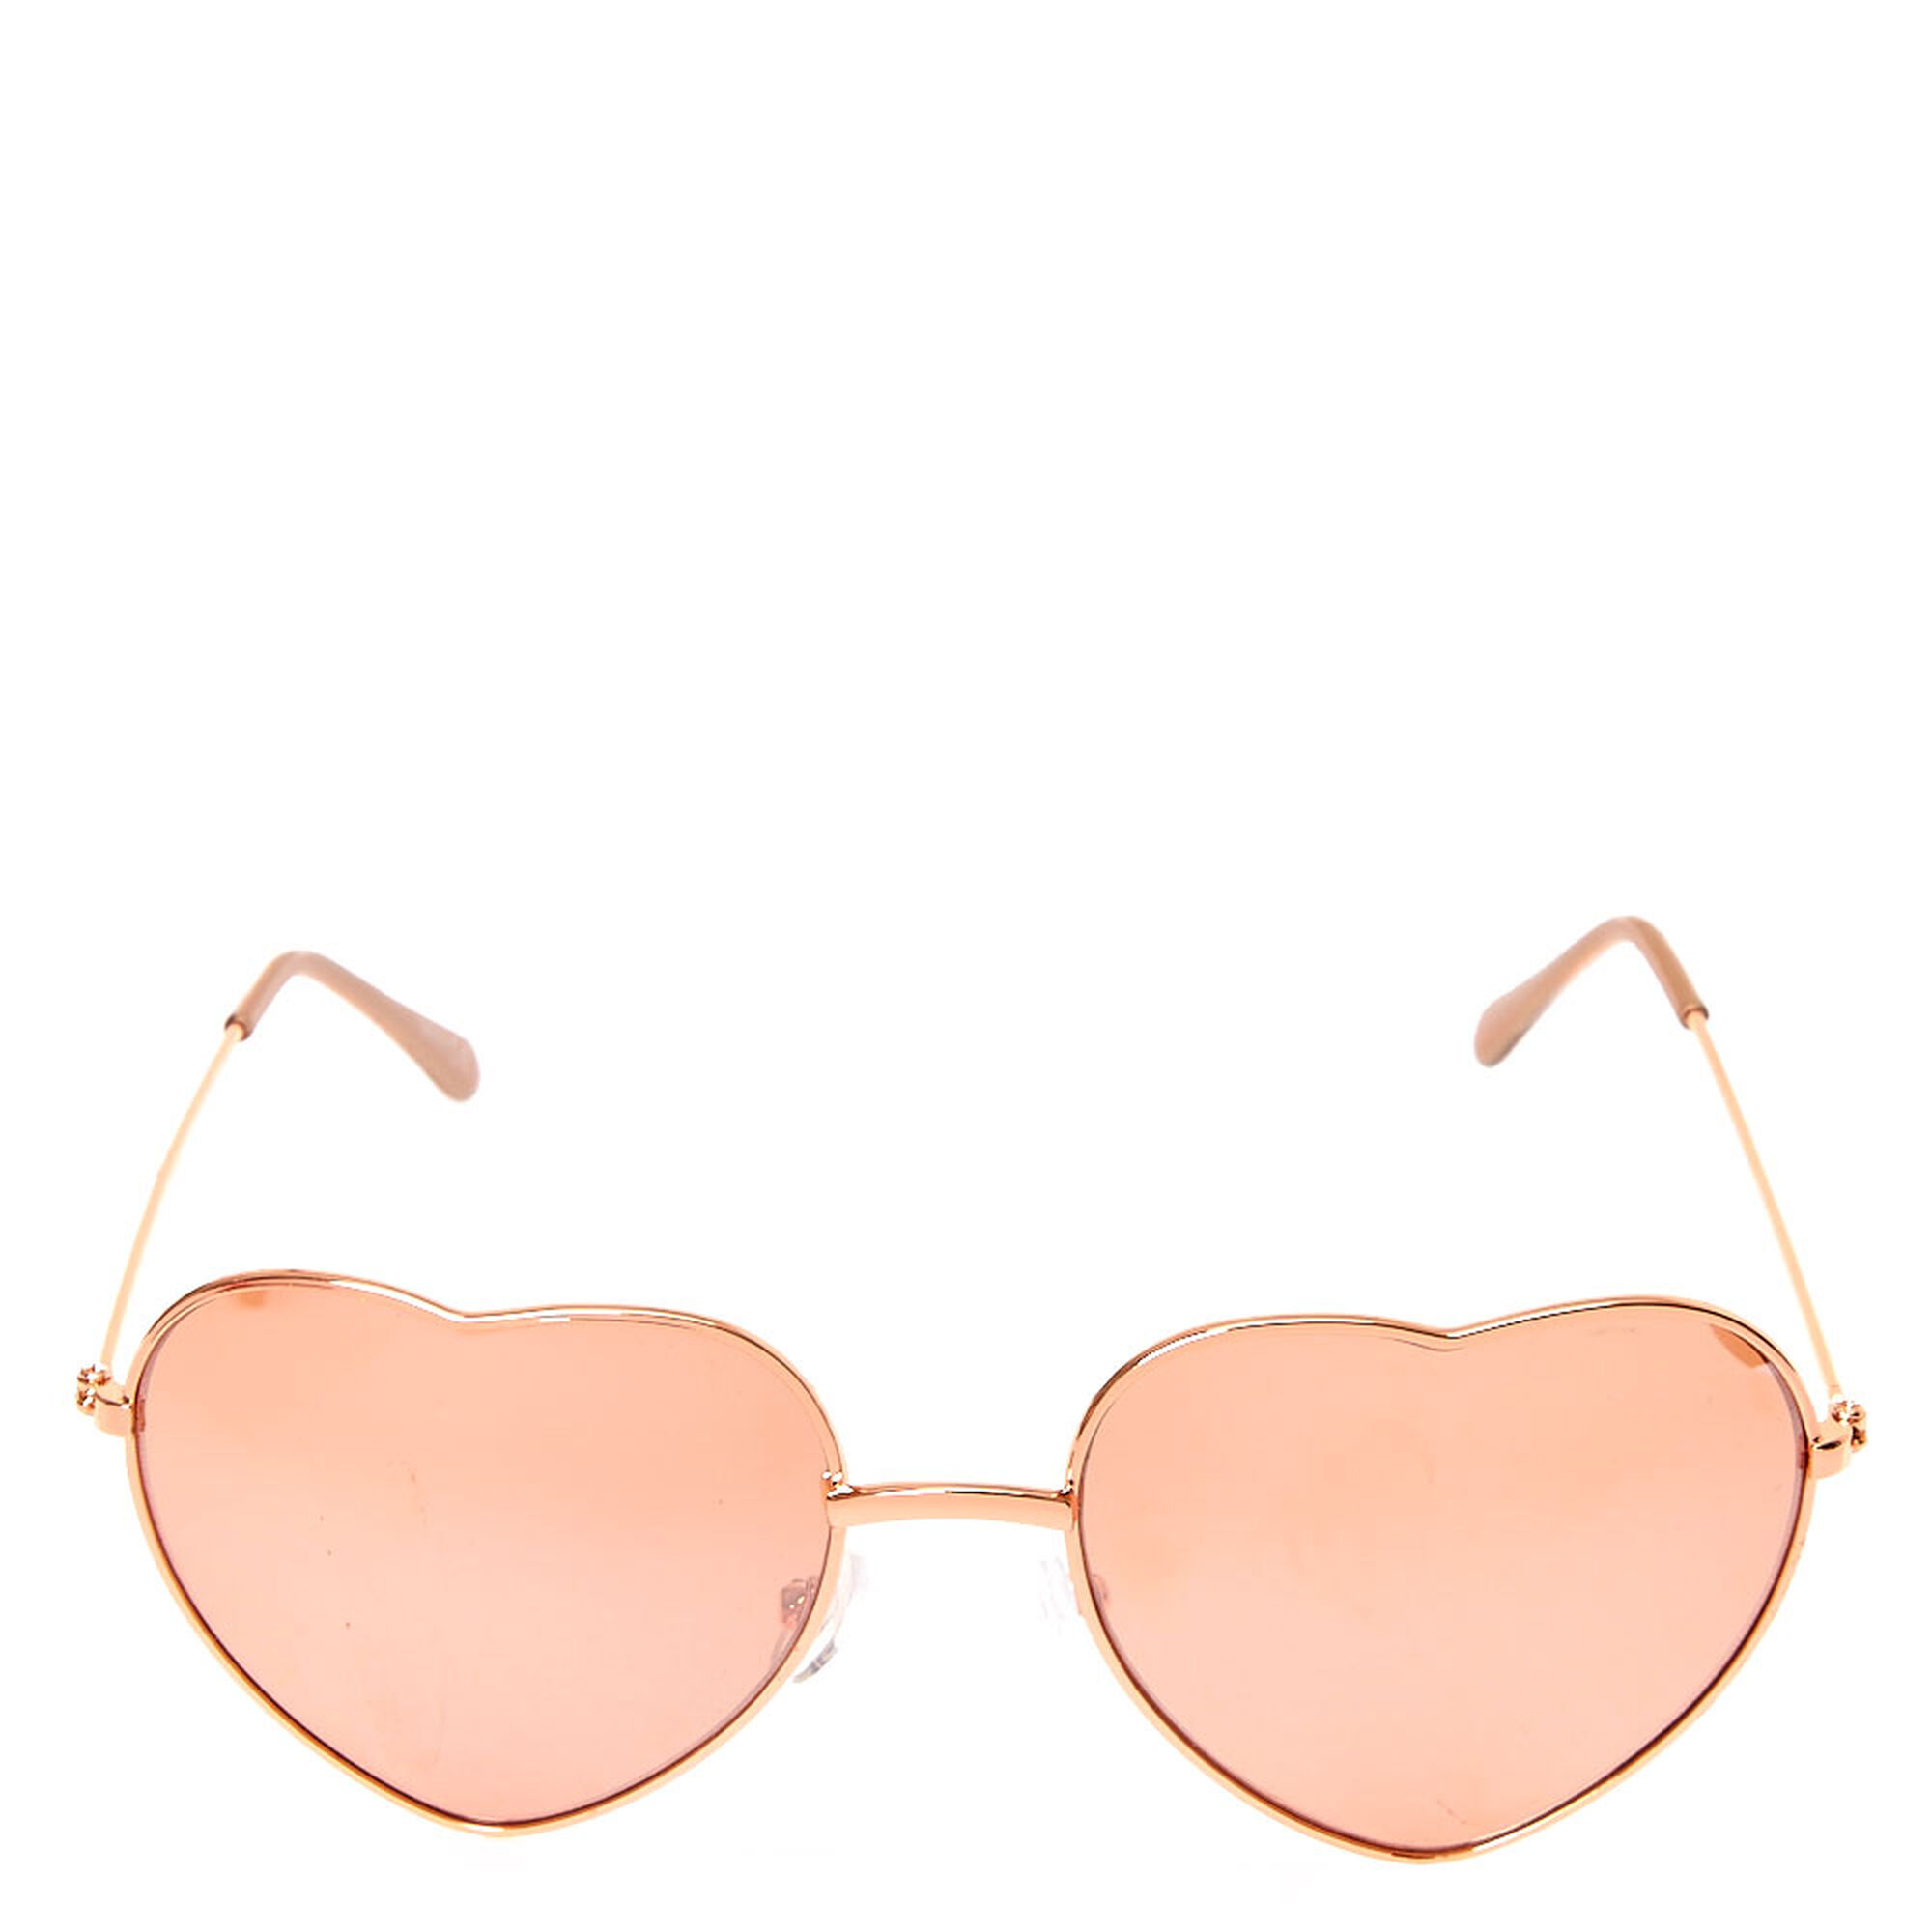 b75b9115704 ... Rose Gold Heart Sunglasses